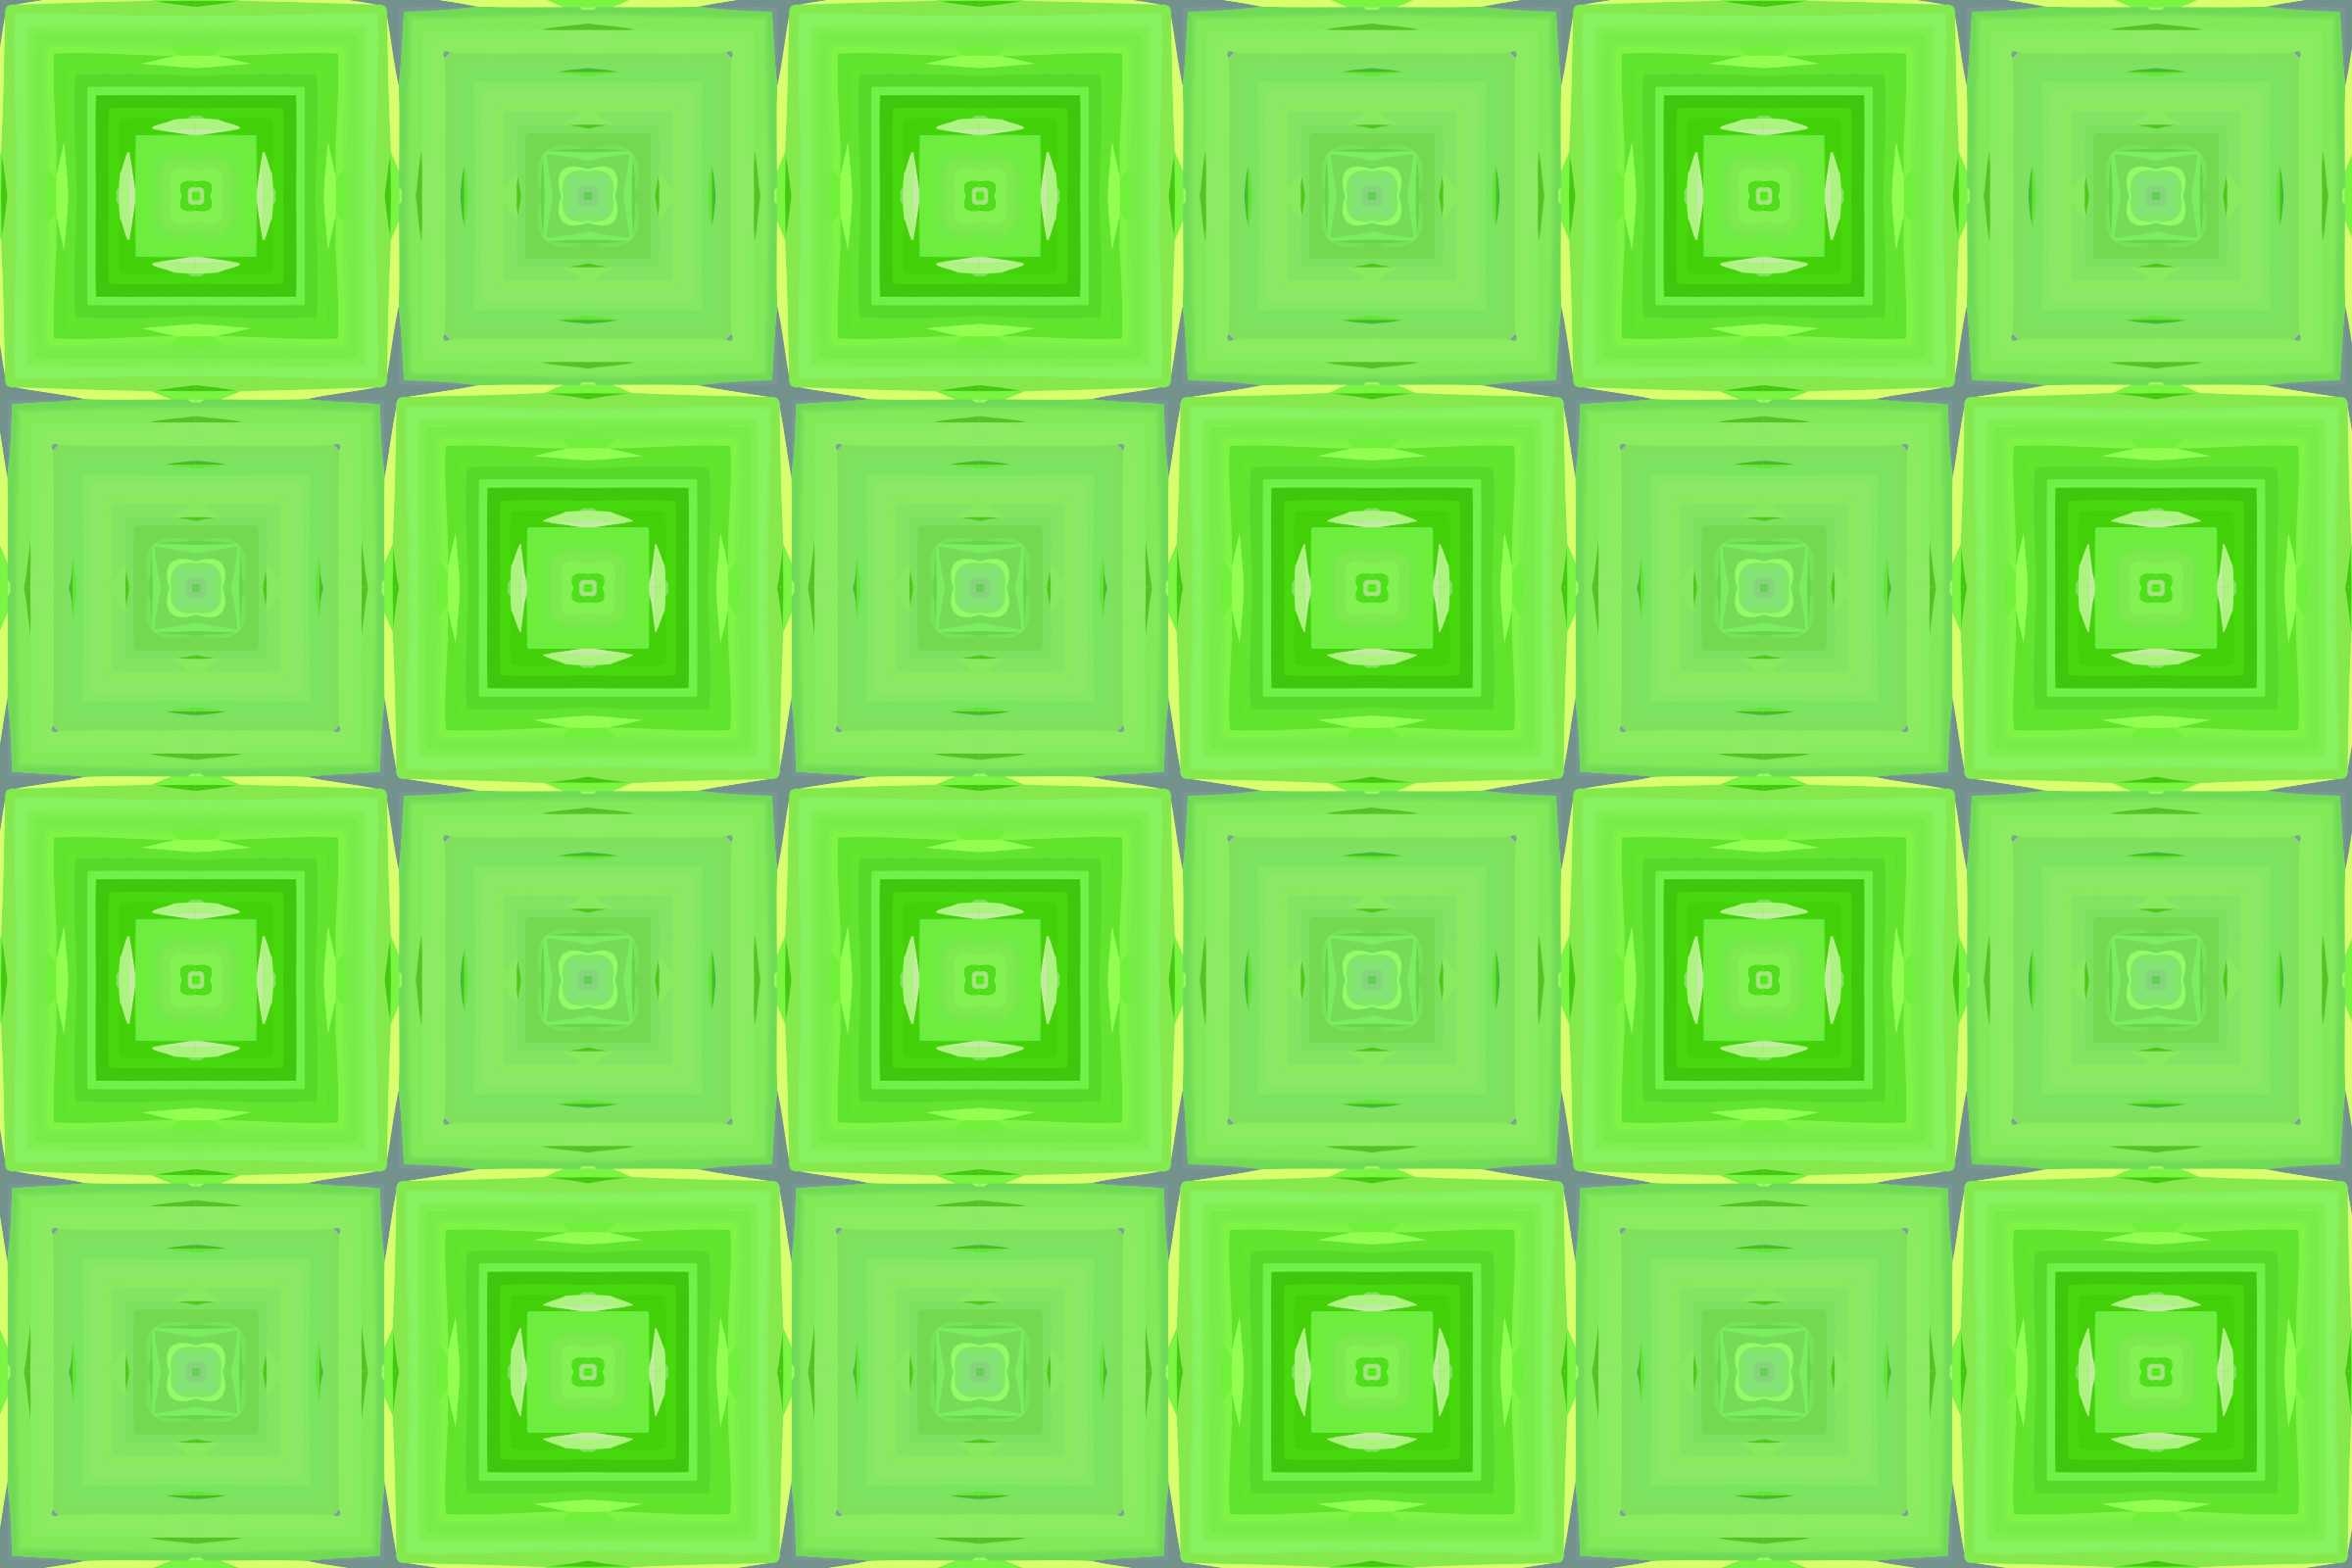 2400x1600 Green background vector files. Graphic by Public Domain.